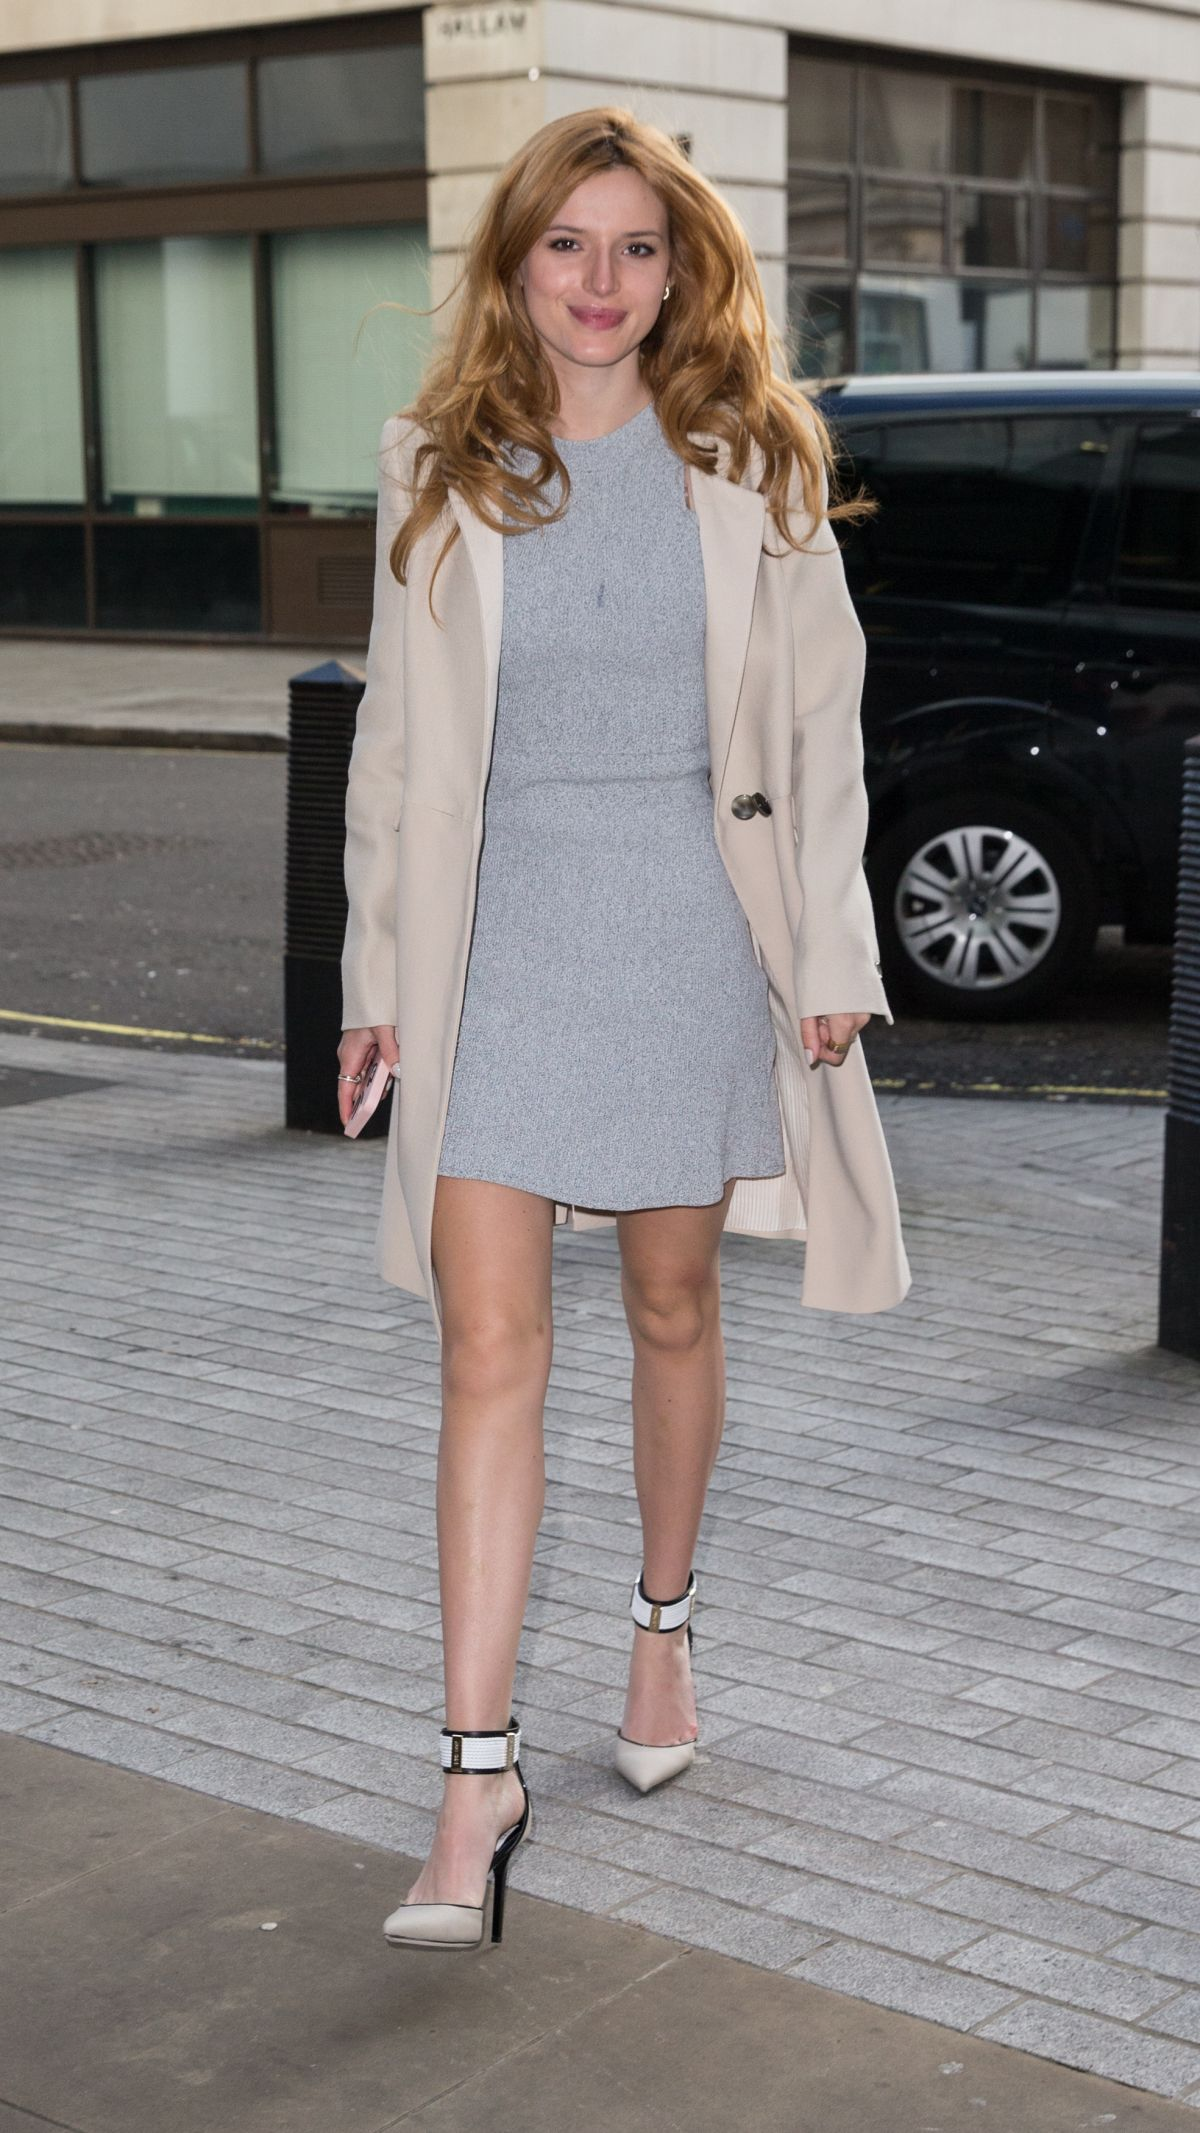 BELLA THORNE Arrives at BBC Radio 1 Studios in London